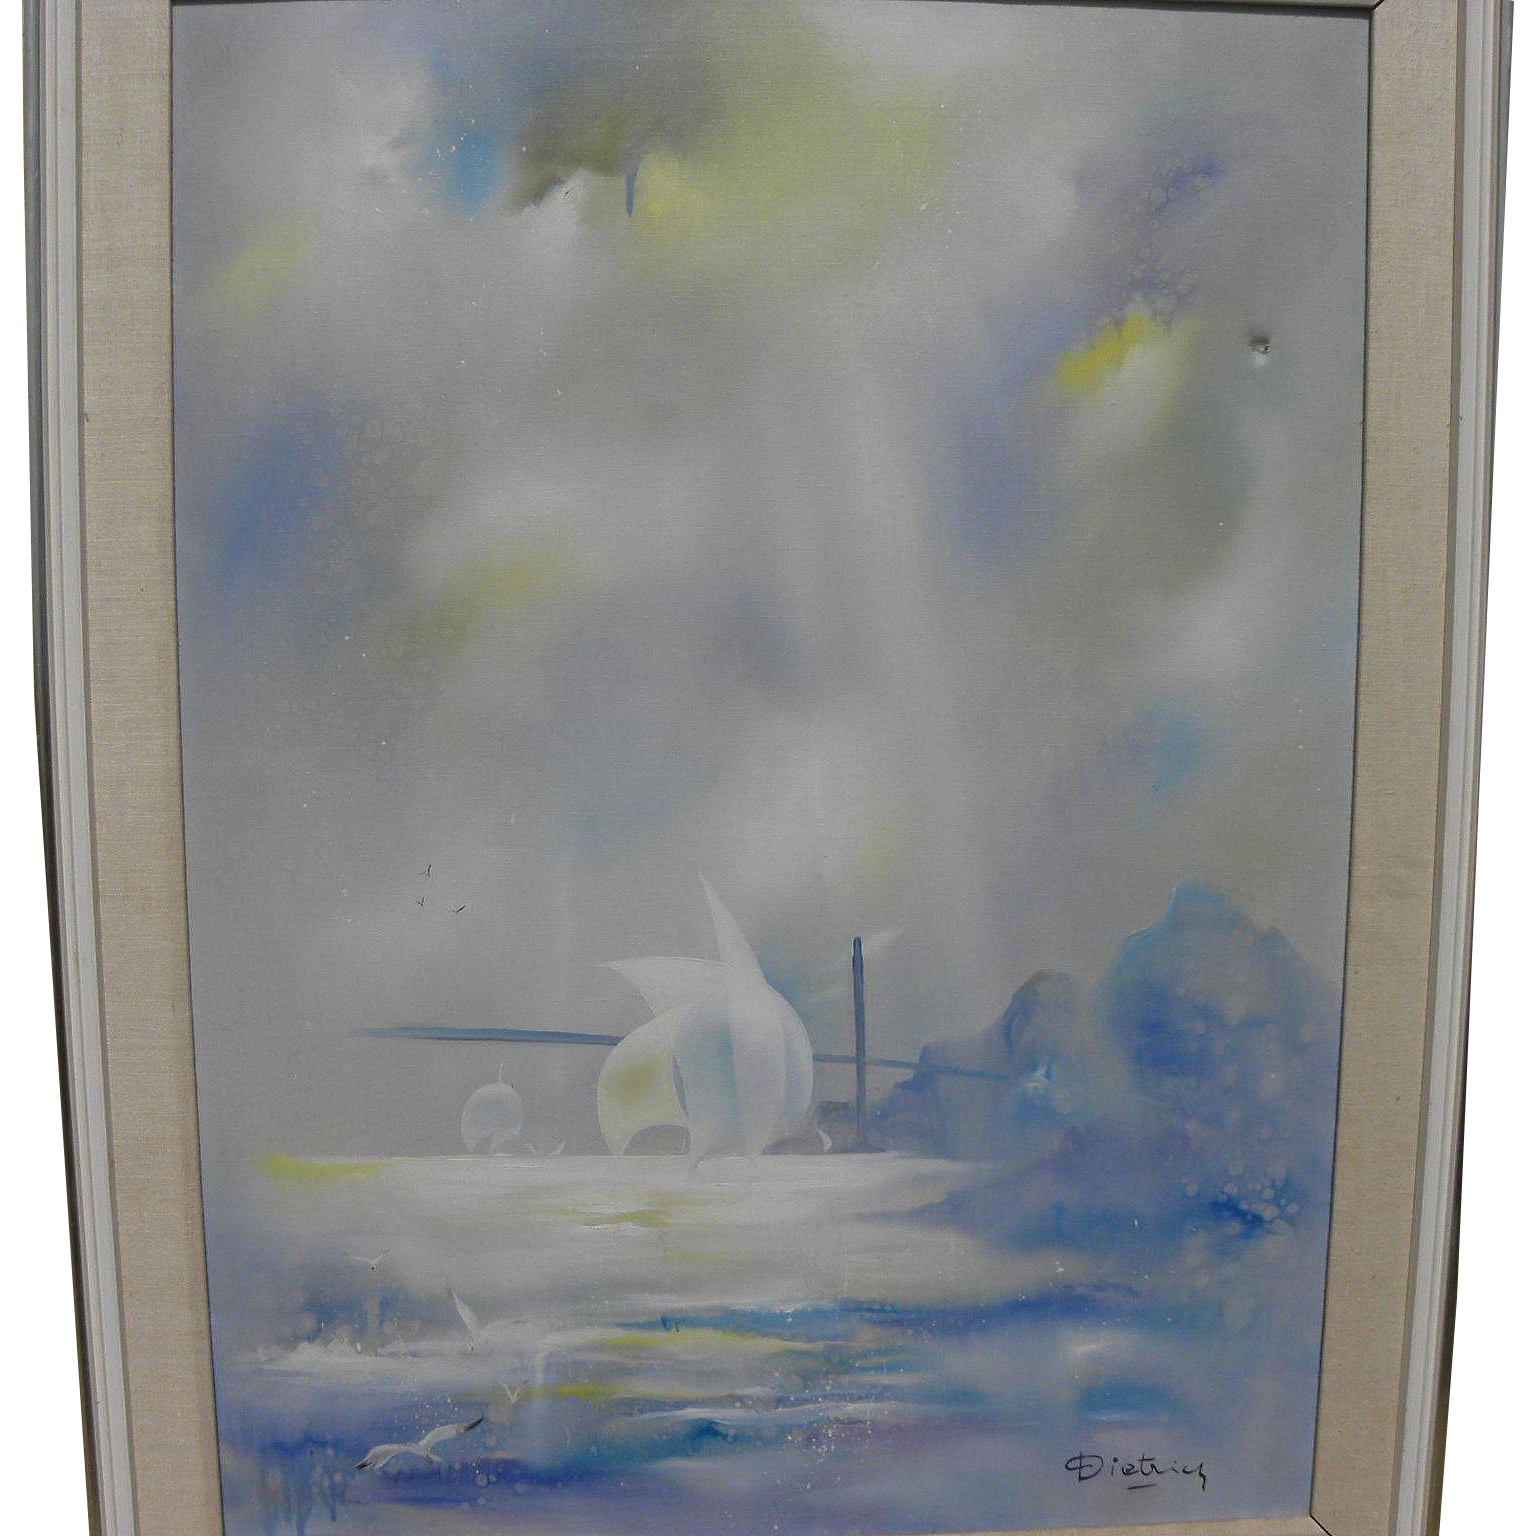 HERMANN DIETRICH (1916-2003) original mid century oil painting of Golden Gate in San Francisco by listed California impressionist artist